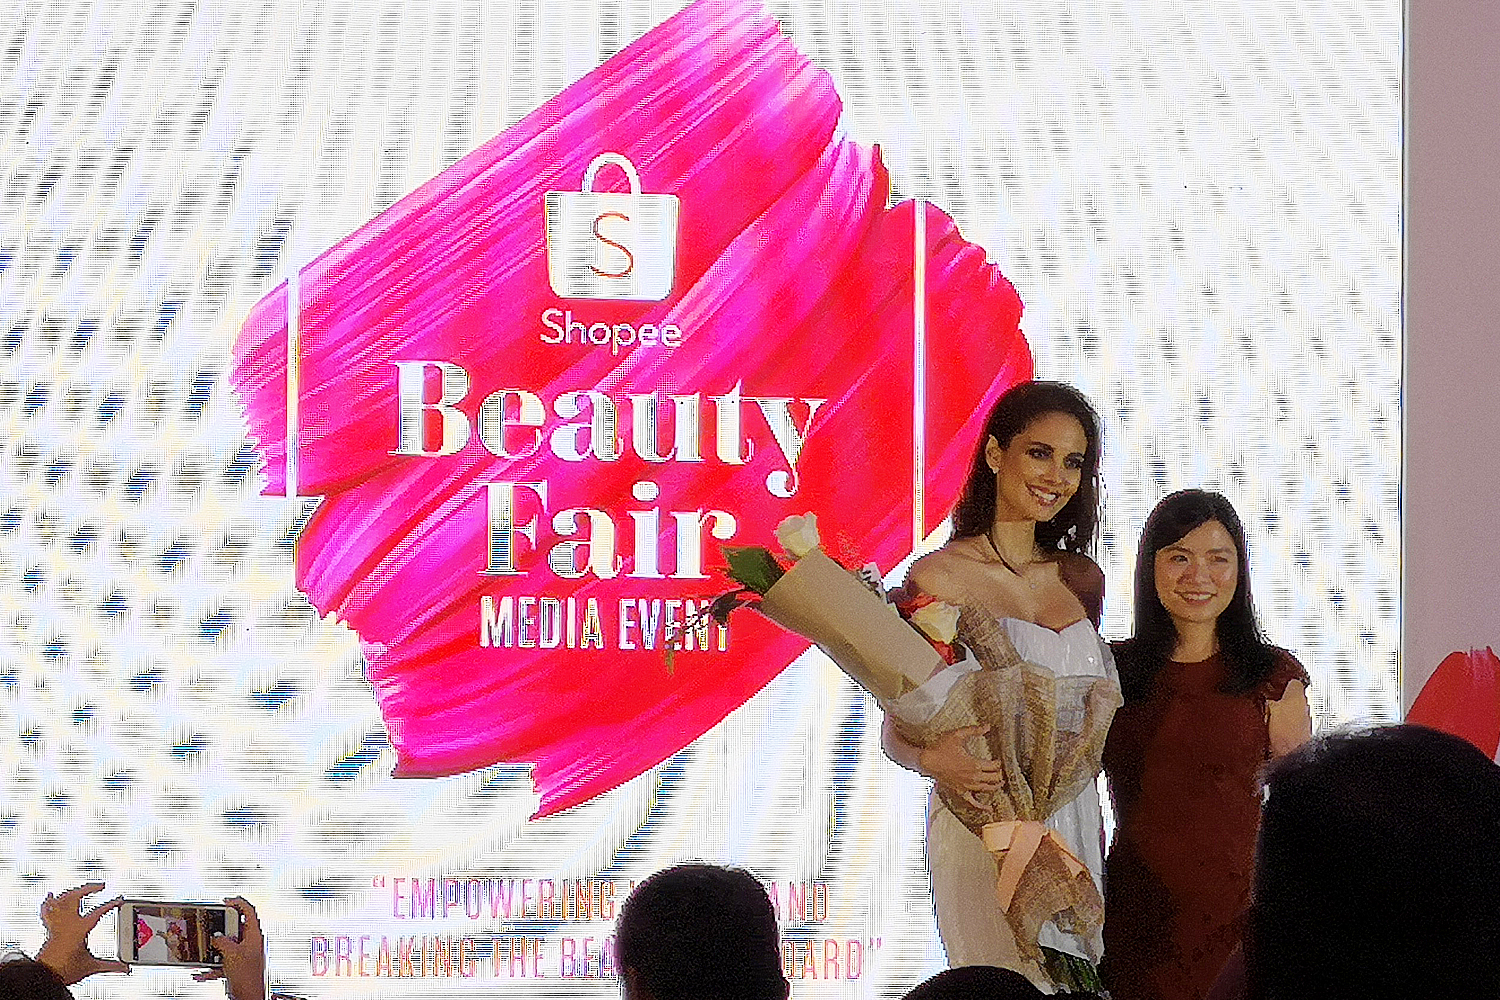 Shopee Celebrates Women Empowerment at the Launch of Shopee Beauty Fair